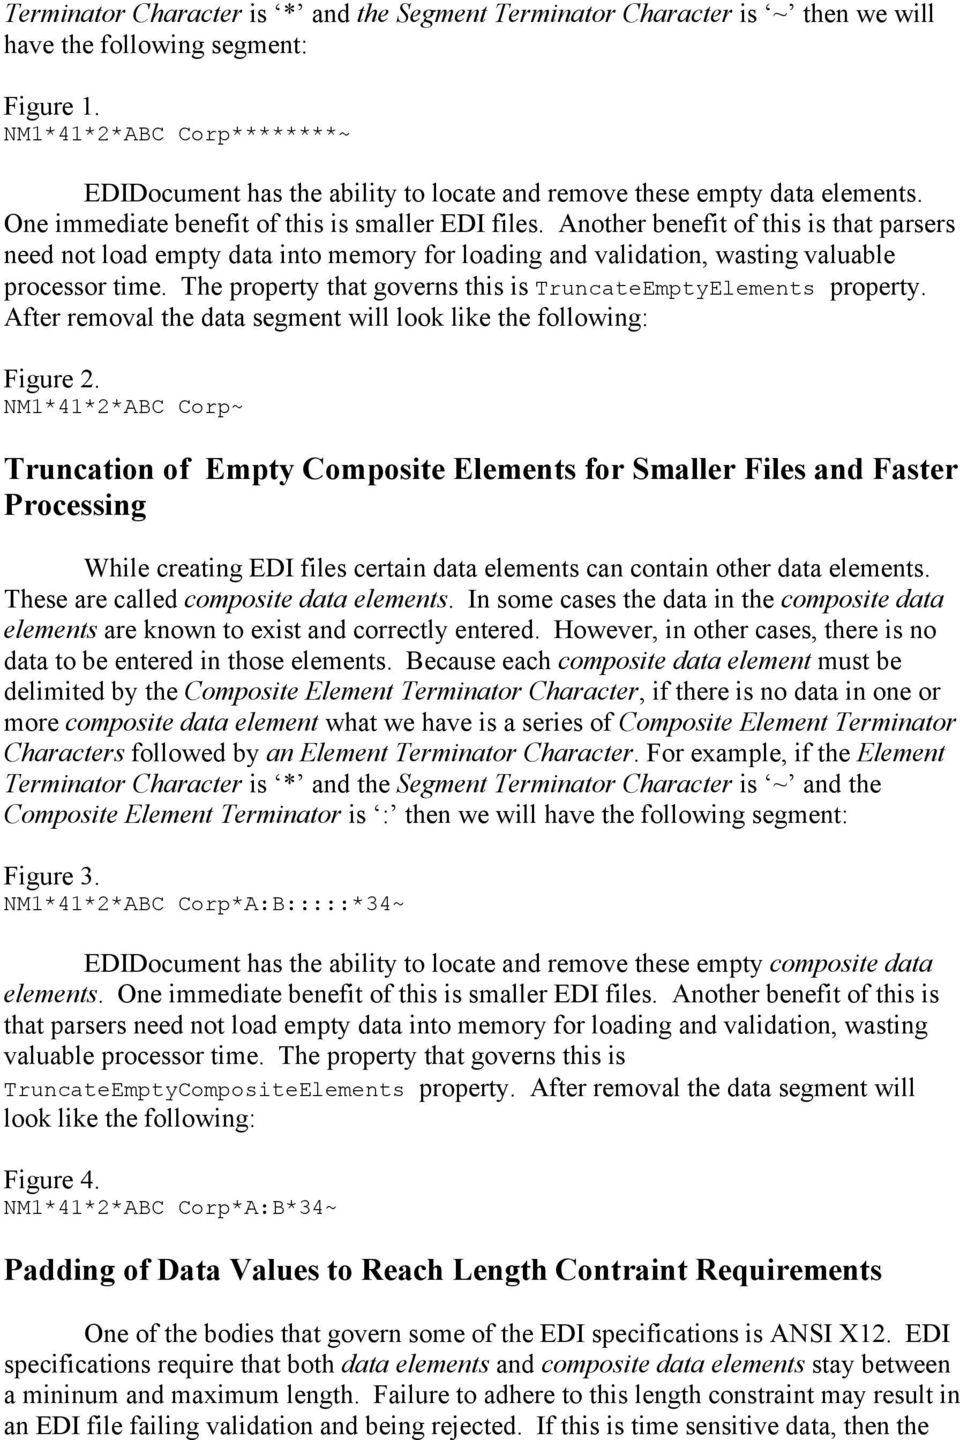 White Papers: EDIDocument Crystal Universe Software Document